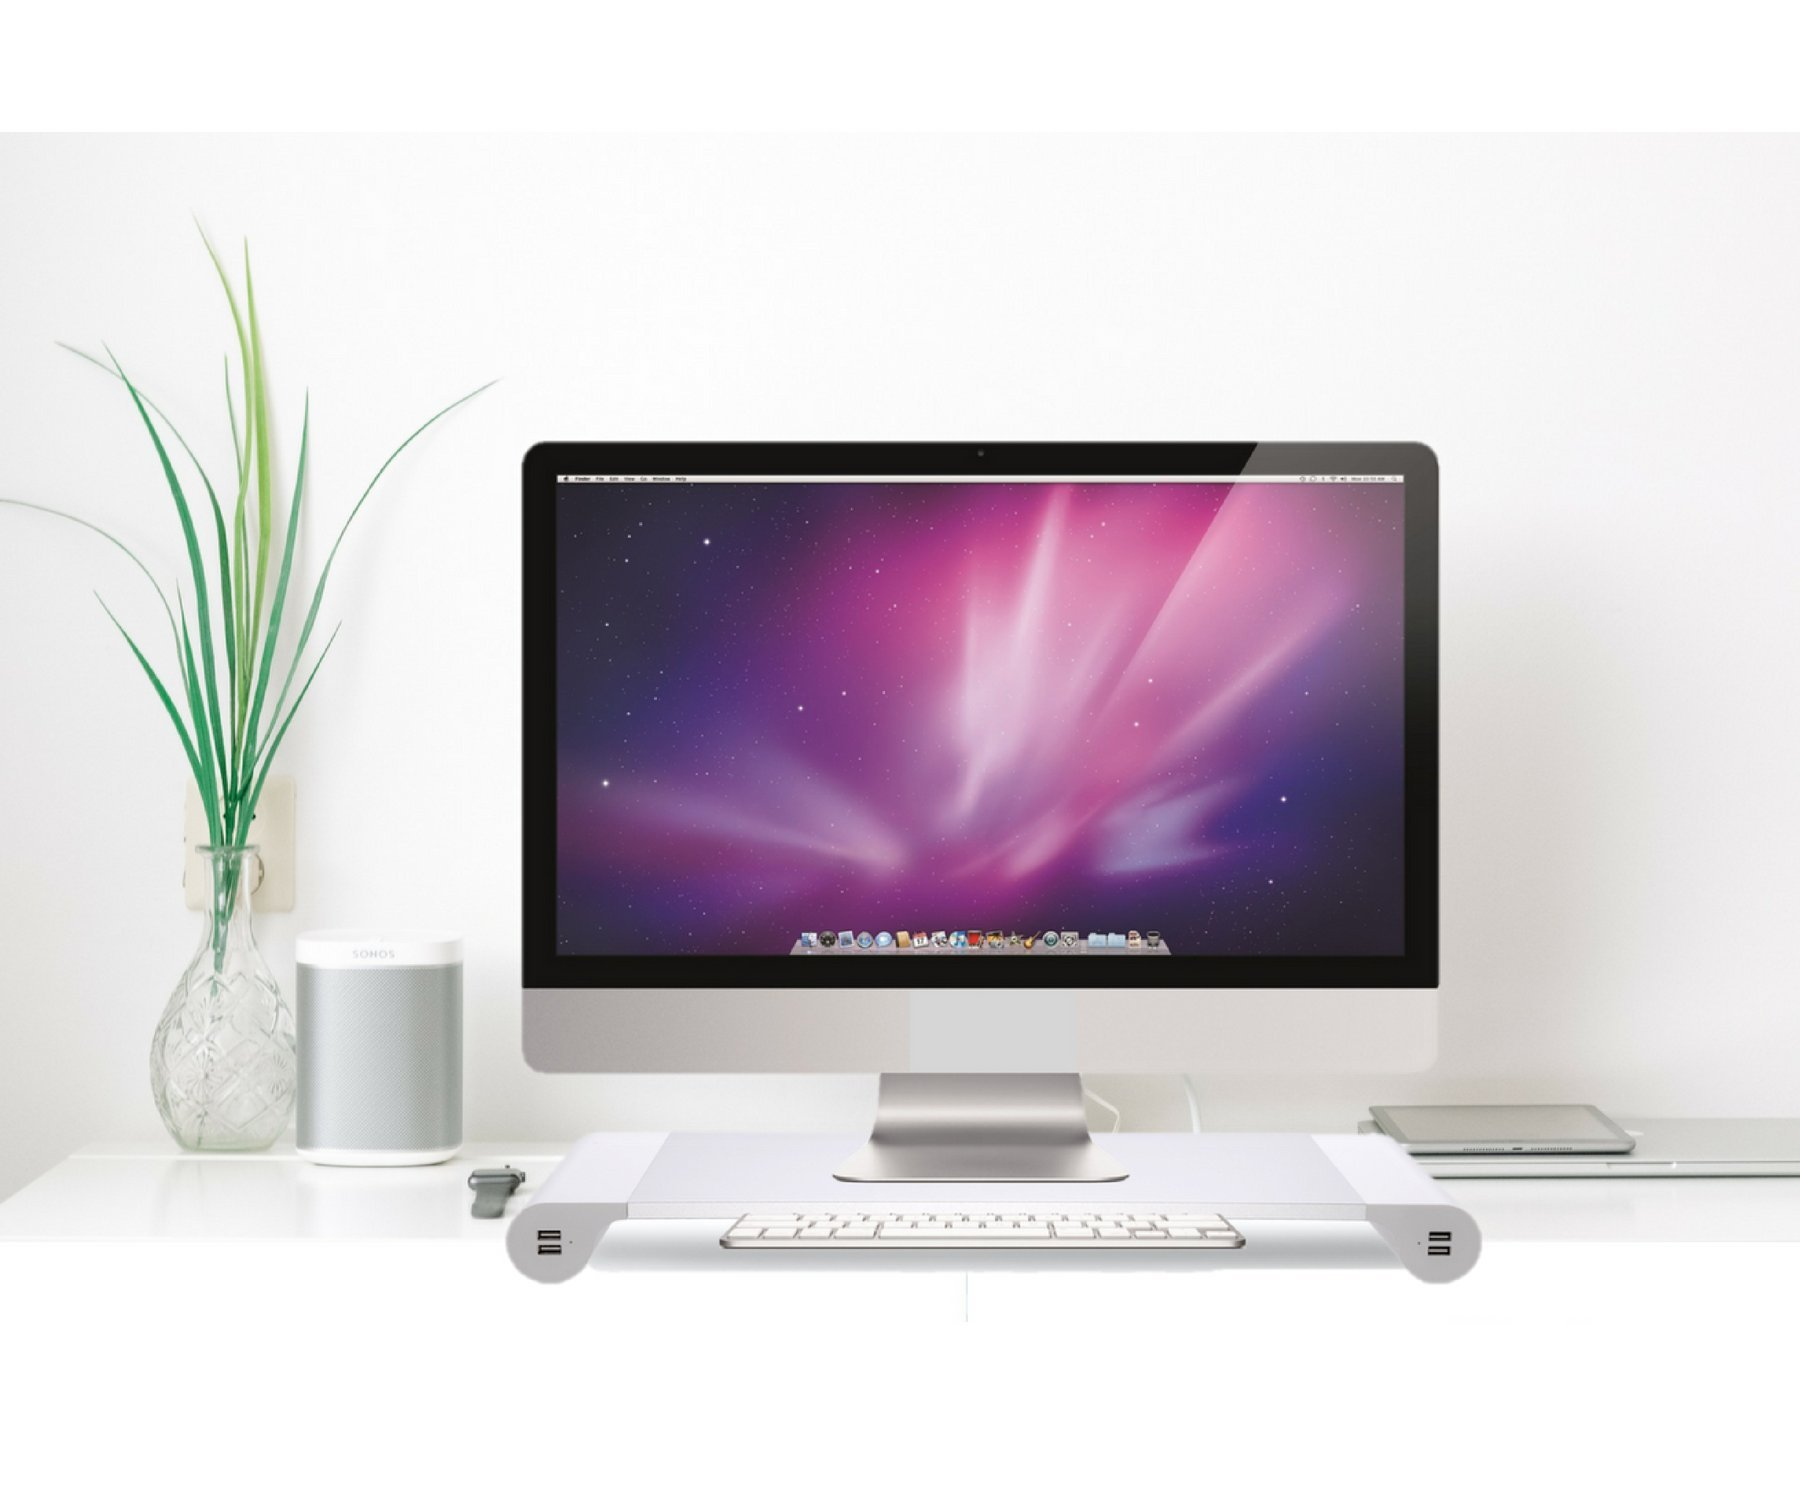 Monitor Stand Riser for Computer PC MAC - Reduce Neck Pain - Keyboard Storage Office Desk Drawer Organizer Keep It Neat and Tidy - 4 USB Power Charging Station (WALL PLUG) Within Your Arm Reach by Howamaz (Image #6)